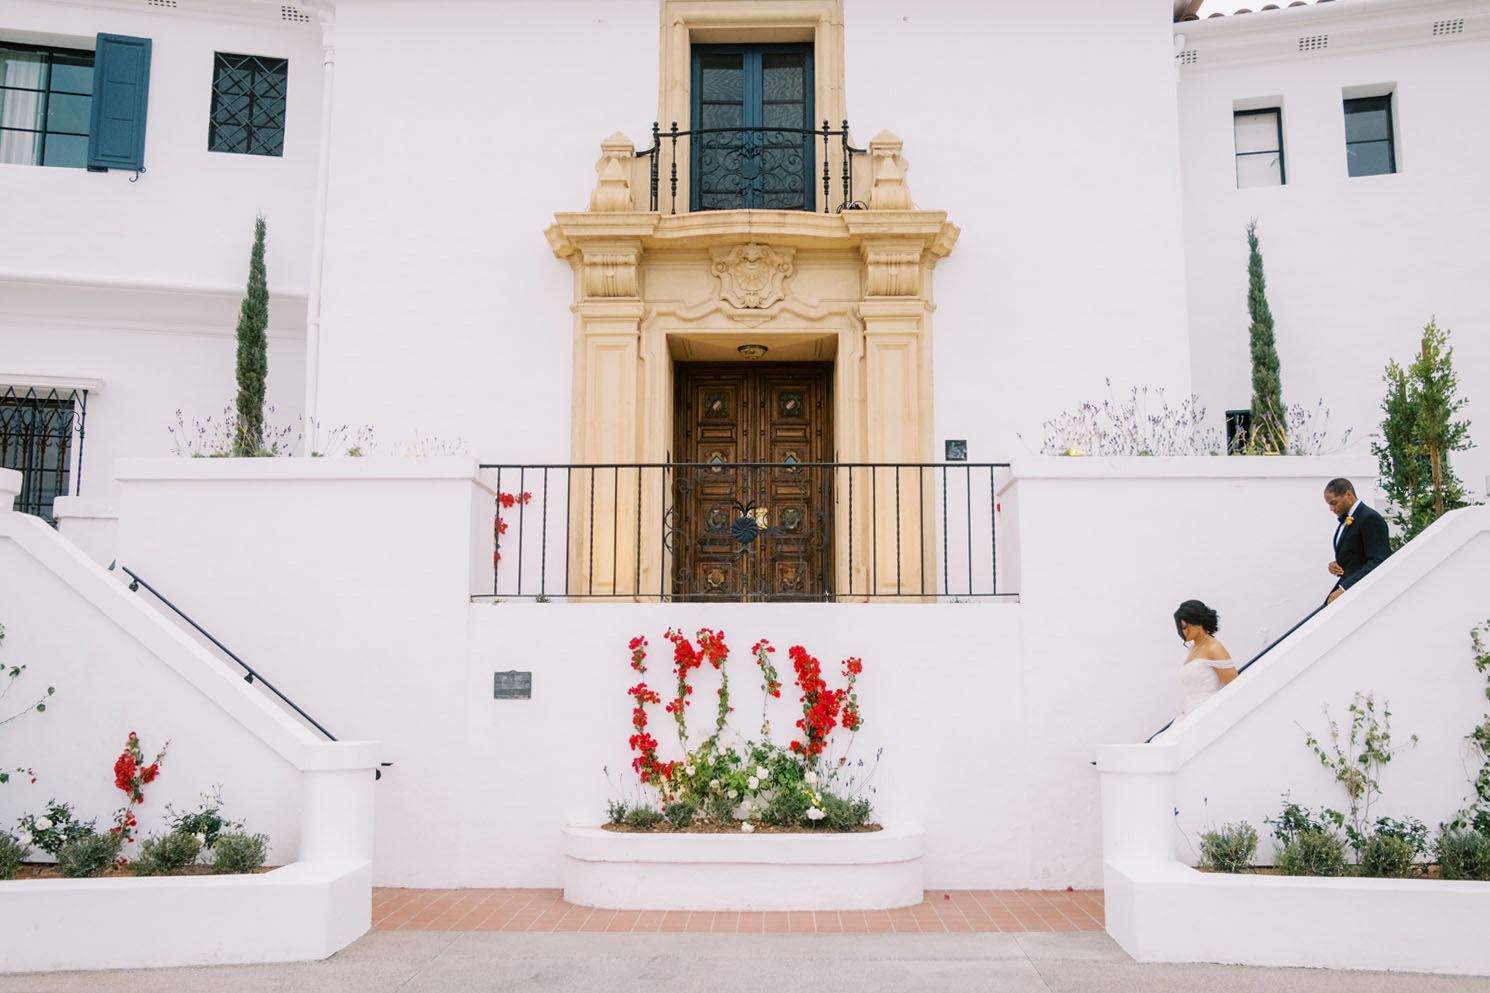 bride and groom descending stairs outdoors at venue